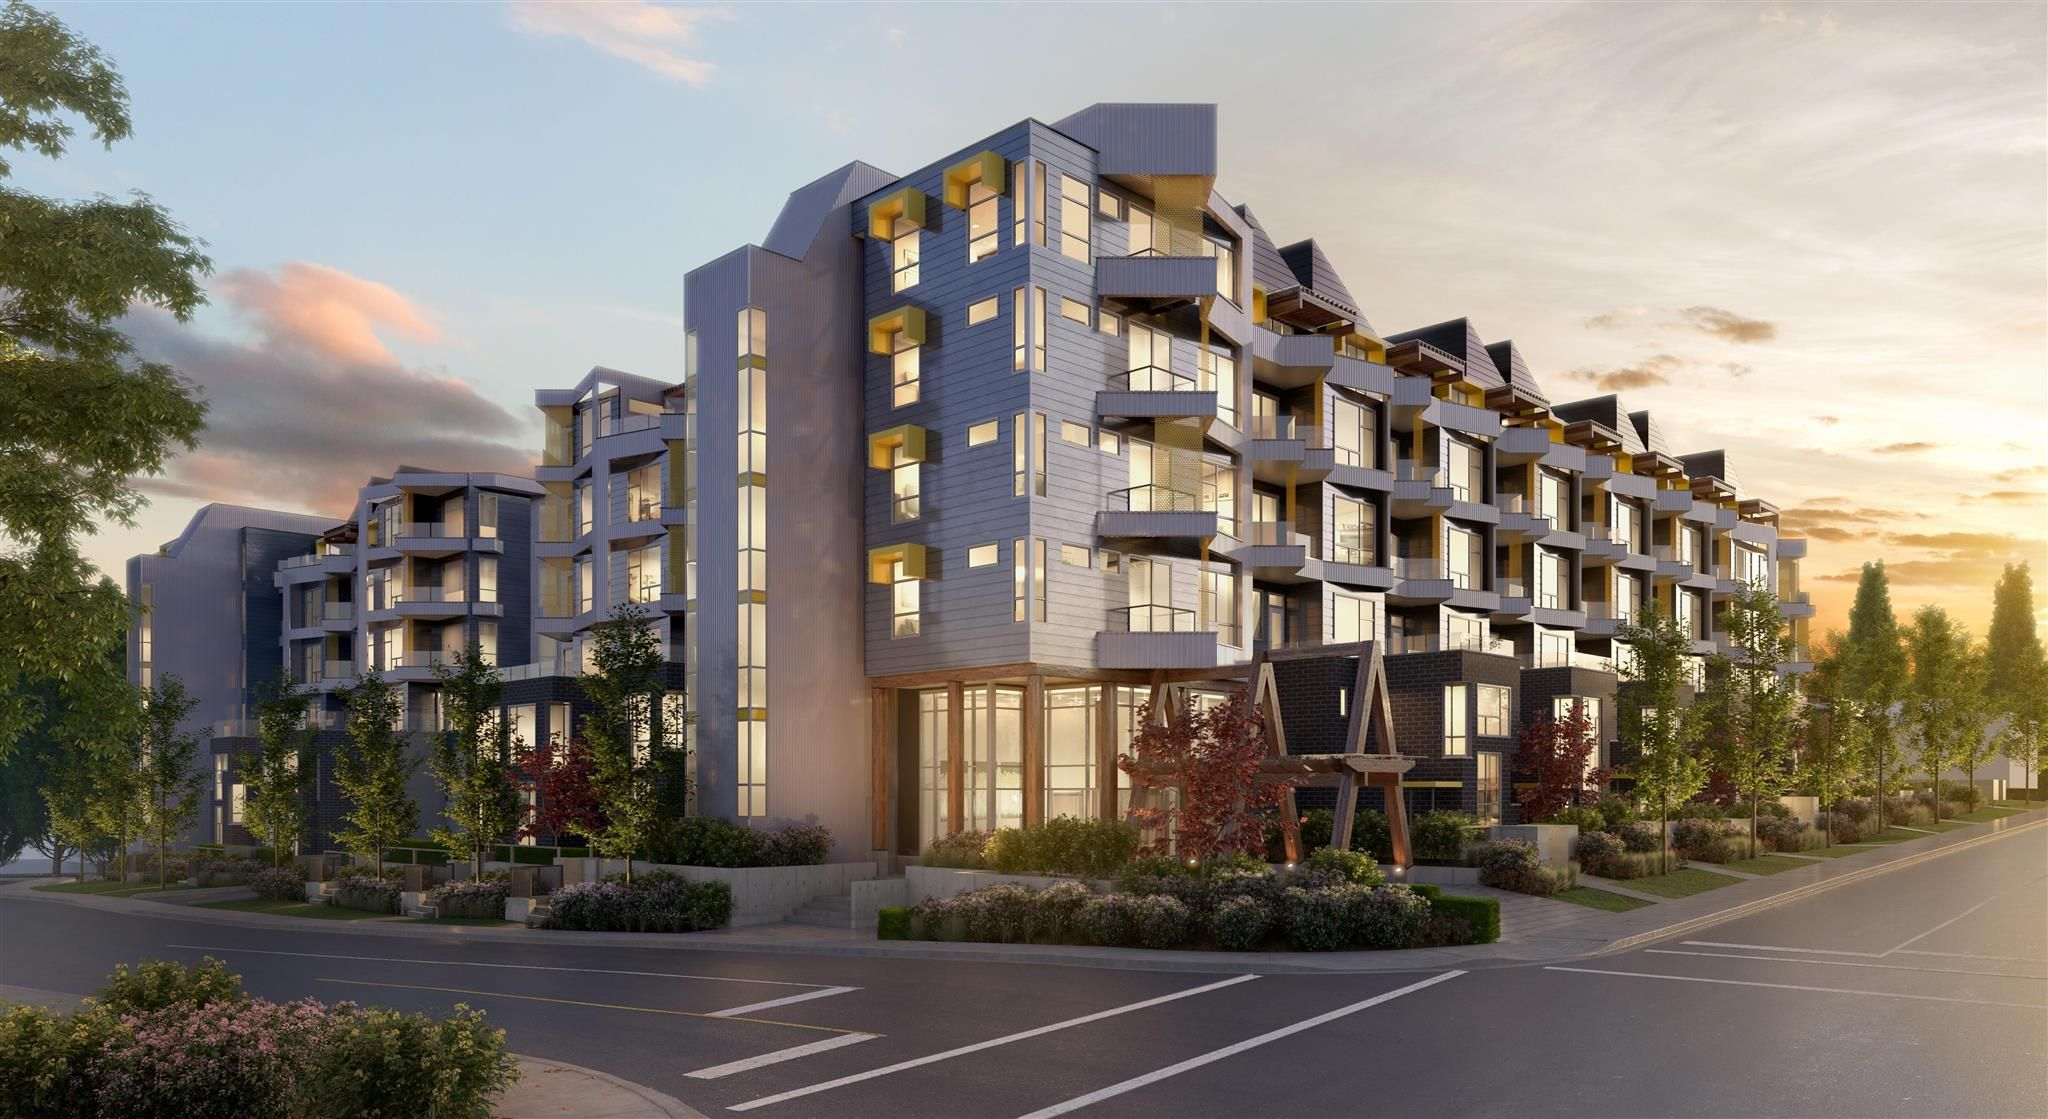 """Main Photo: 207 32838 LANDEAU Place in Abbotsford: Central Abbotsford Condo for sale in """"Court"""" : MLS®# R2607206"""